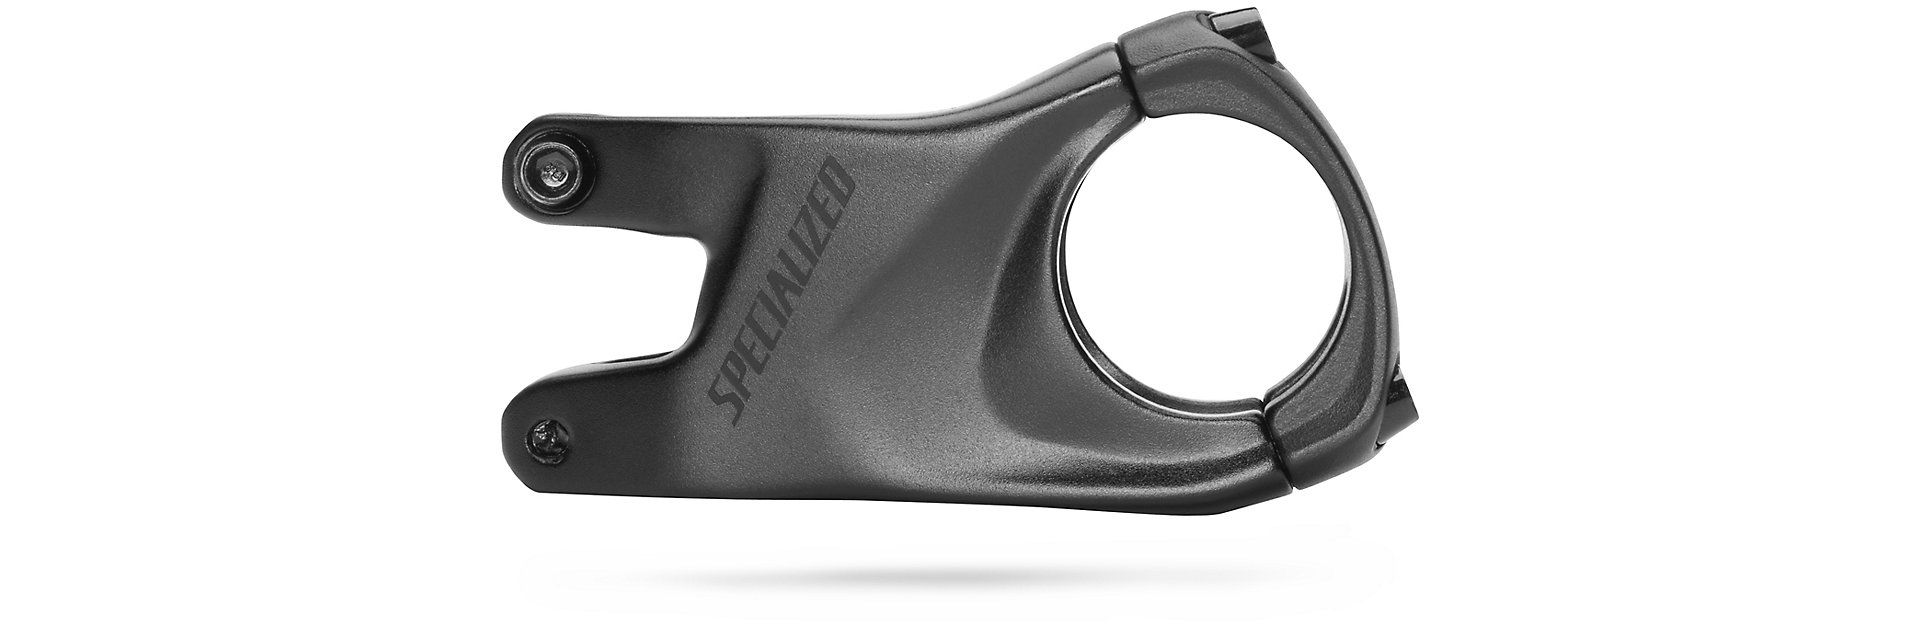 Specialized Vorbau Trail Stem black 31,8 x 60 mm